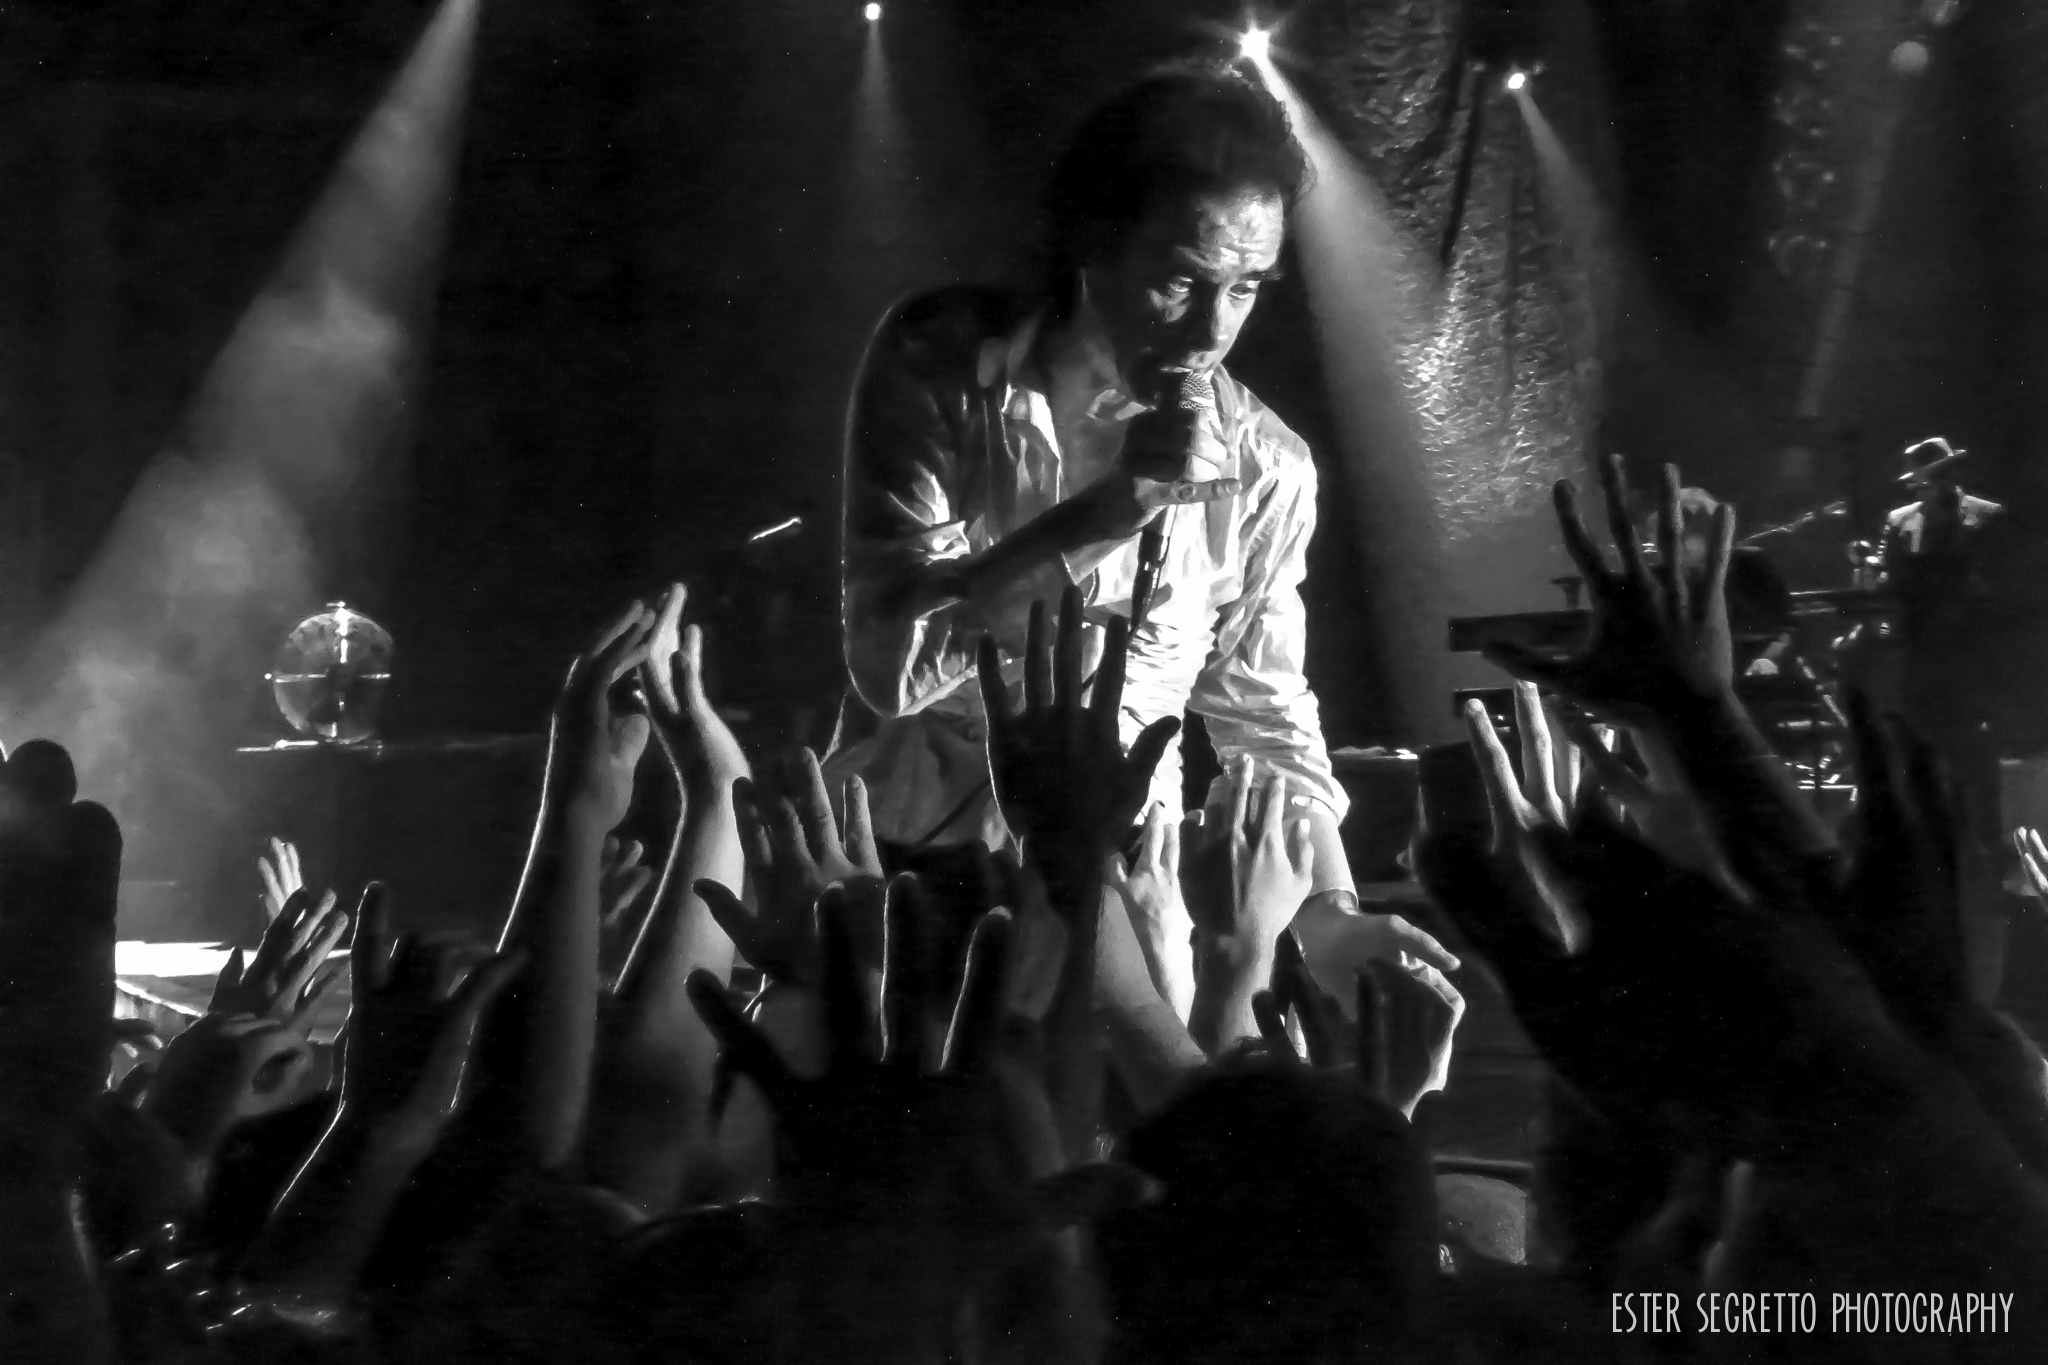 Nick Cave & The Bad Seeds, Ester Segretto Photography 2014